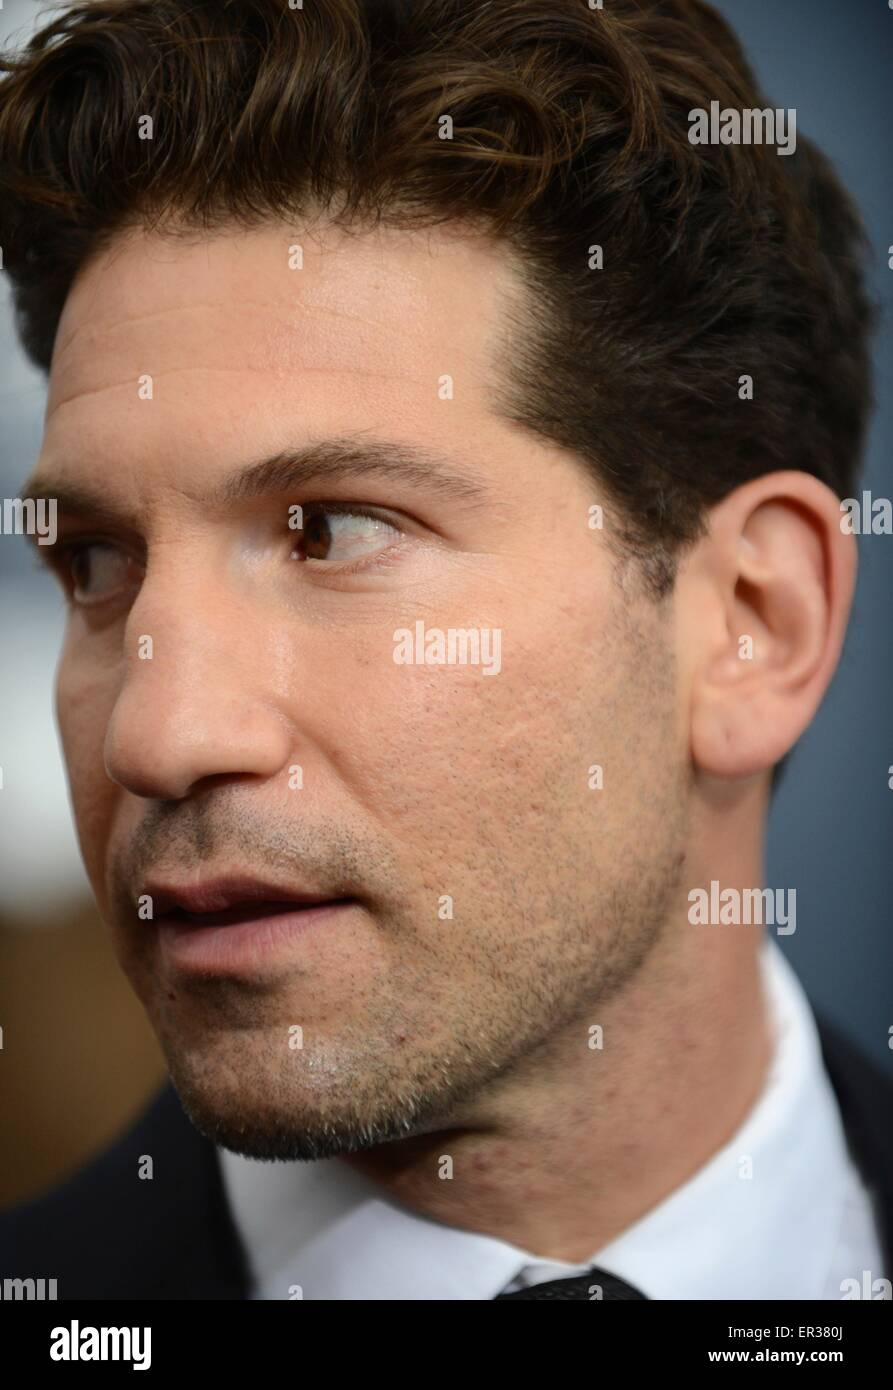 Actor Jon Bernthal at the premier of the blockbuster movie Fury at the Newseum October 21, 2014 in Washington D.C. - Stock Image